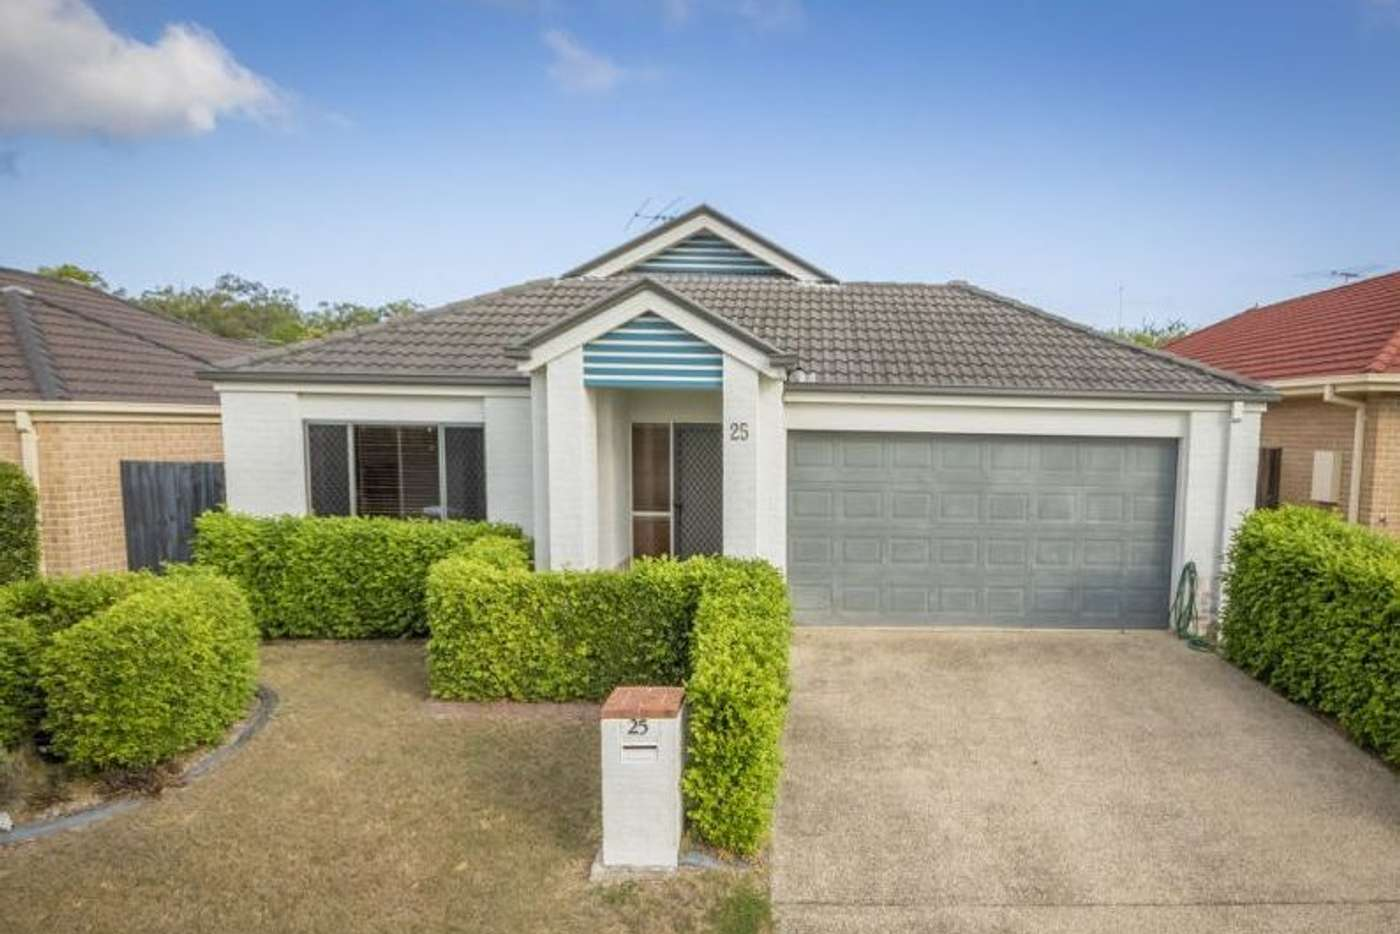 Main view of Homely house listing, 25 Wagner Road, Murrumba Downs QLD 4503